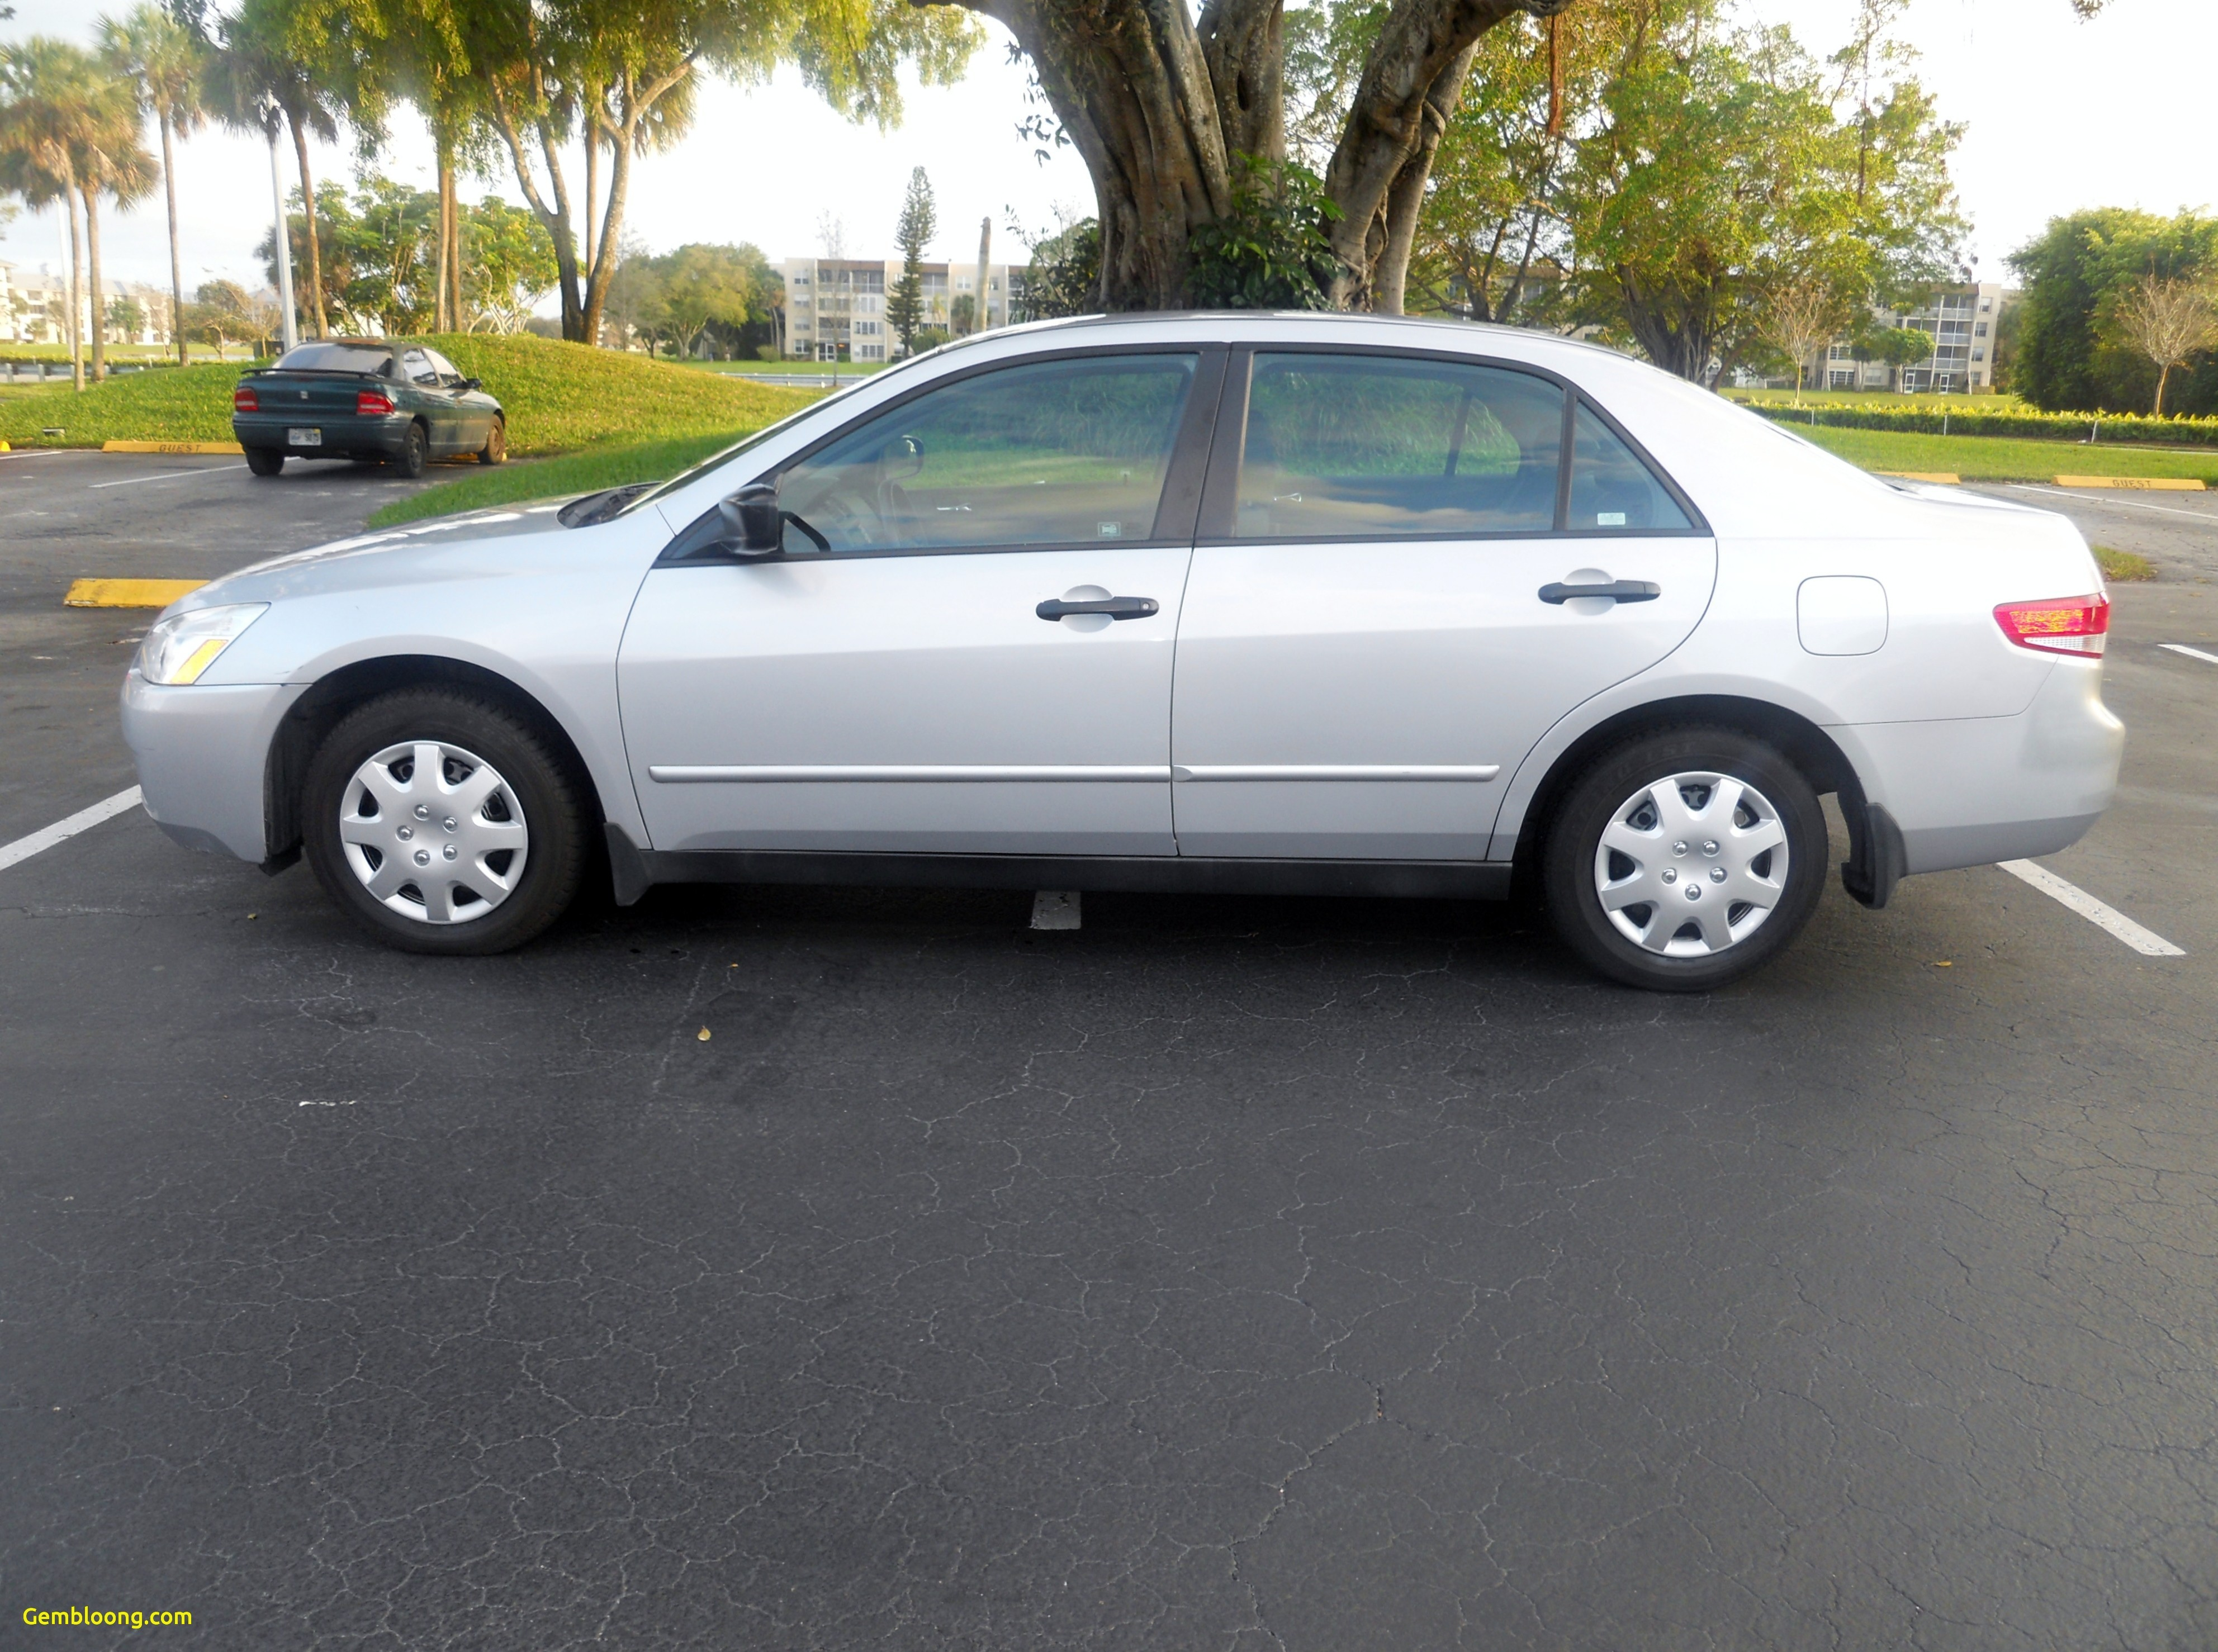 Used Cars for Sale Near Me Private Elegant Craigslist Used Cars by Owner Near Me Online User Manual •